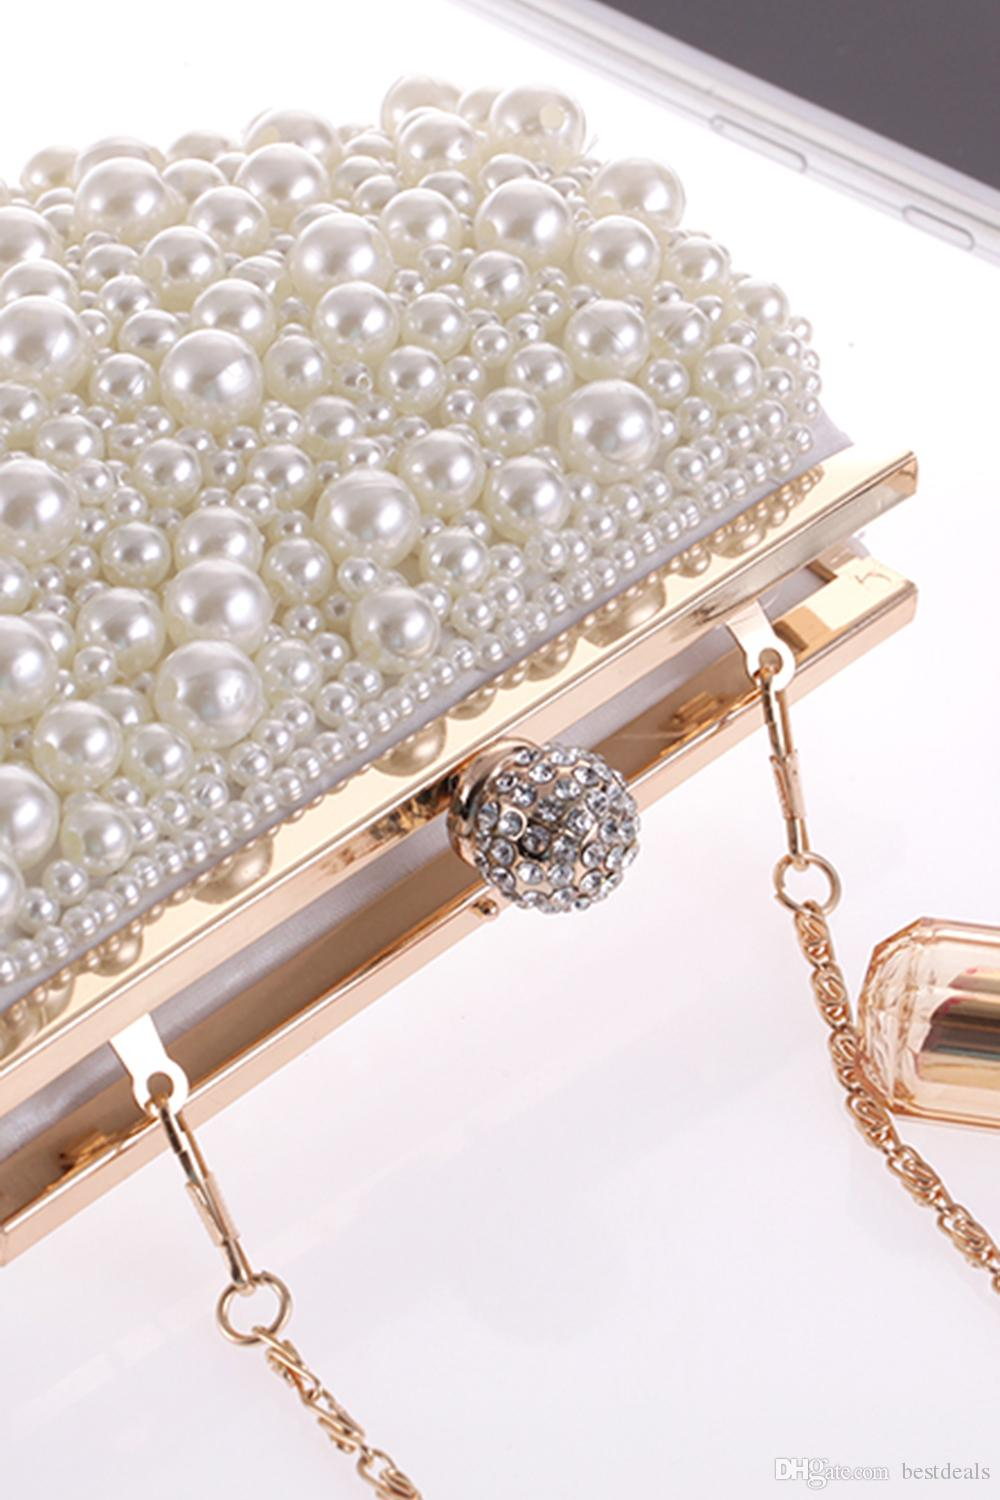 2017 Hot Cheap Crystal Pearls Bridal Bags with Chain Women Wedding Evening Prom Party Handbag Shoulder Bags Clutch Bags CPA960